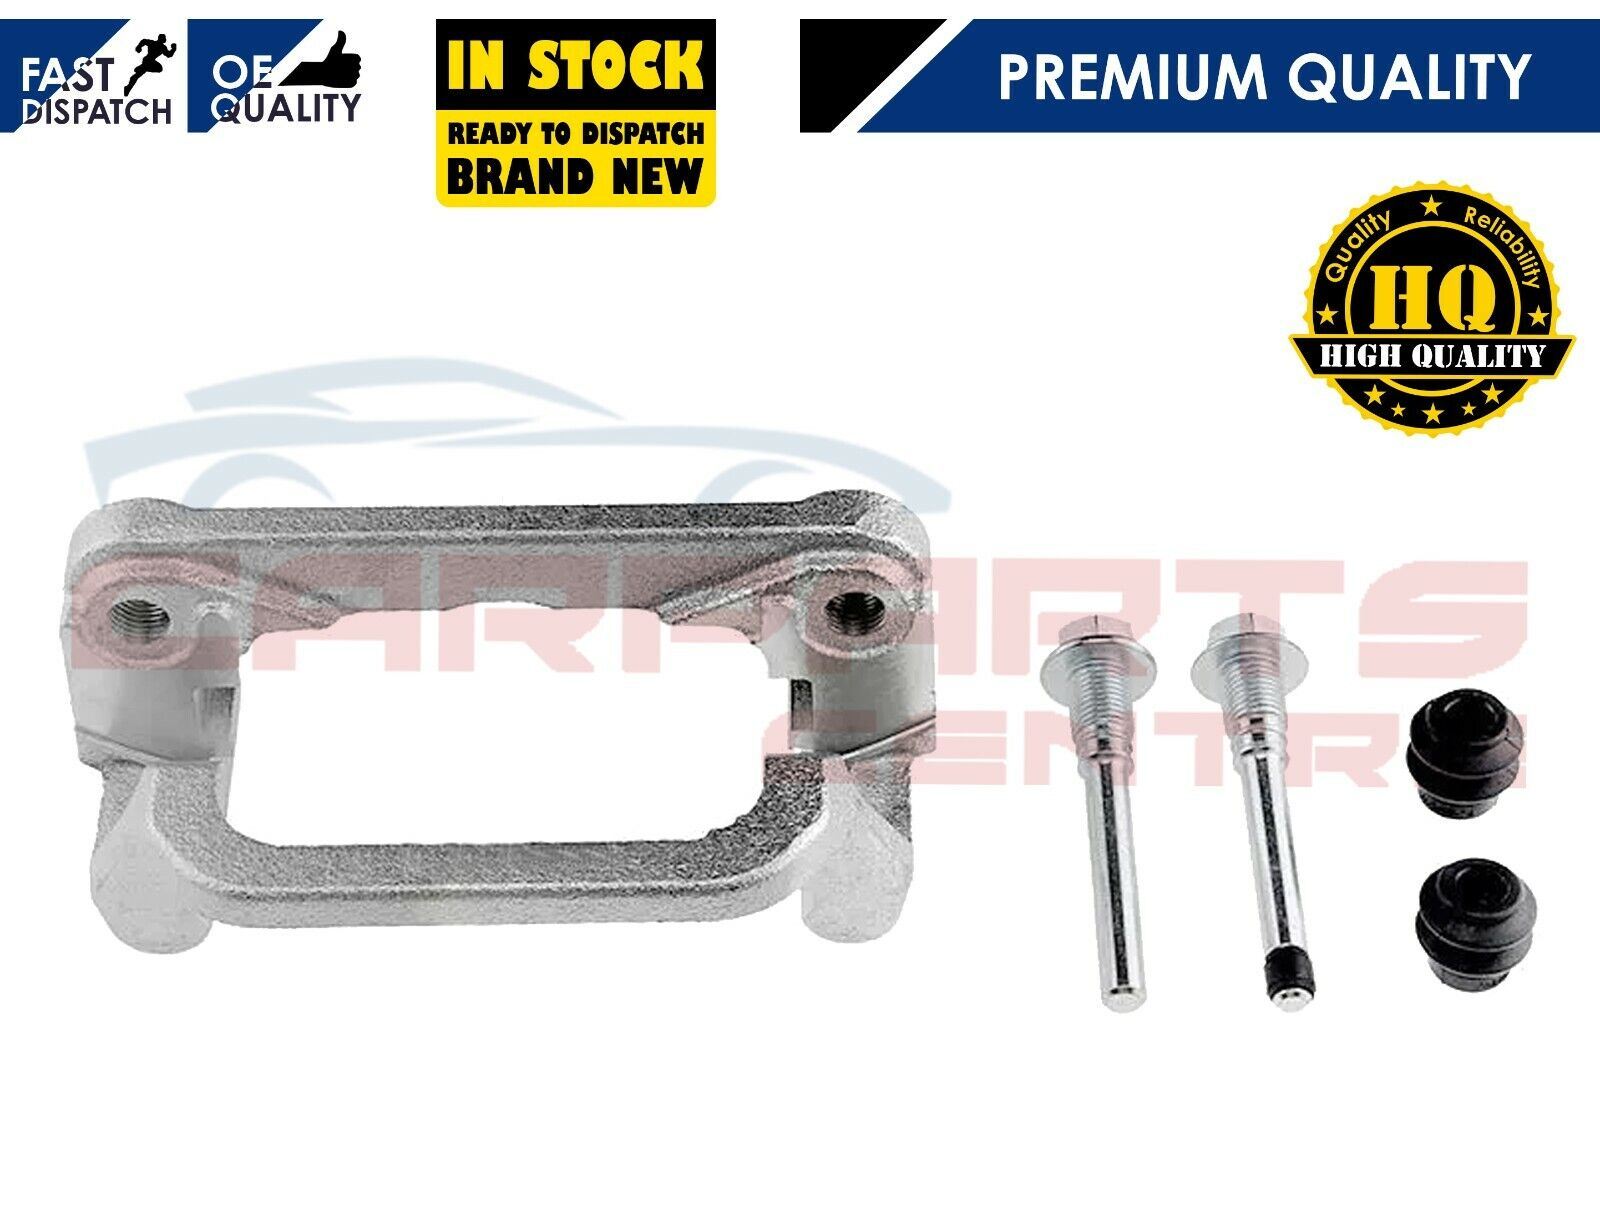 FOR NISSAN XTRAIL X-TRAIL T30 T31 REAR PASSENGER SIDE BRAKE CALIPER WITH CARRIER